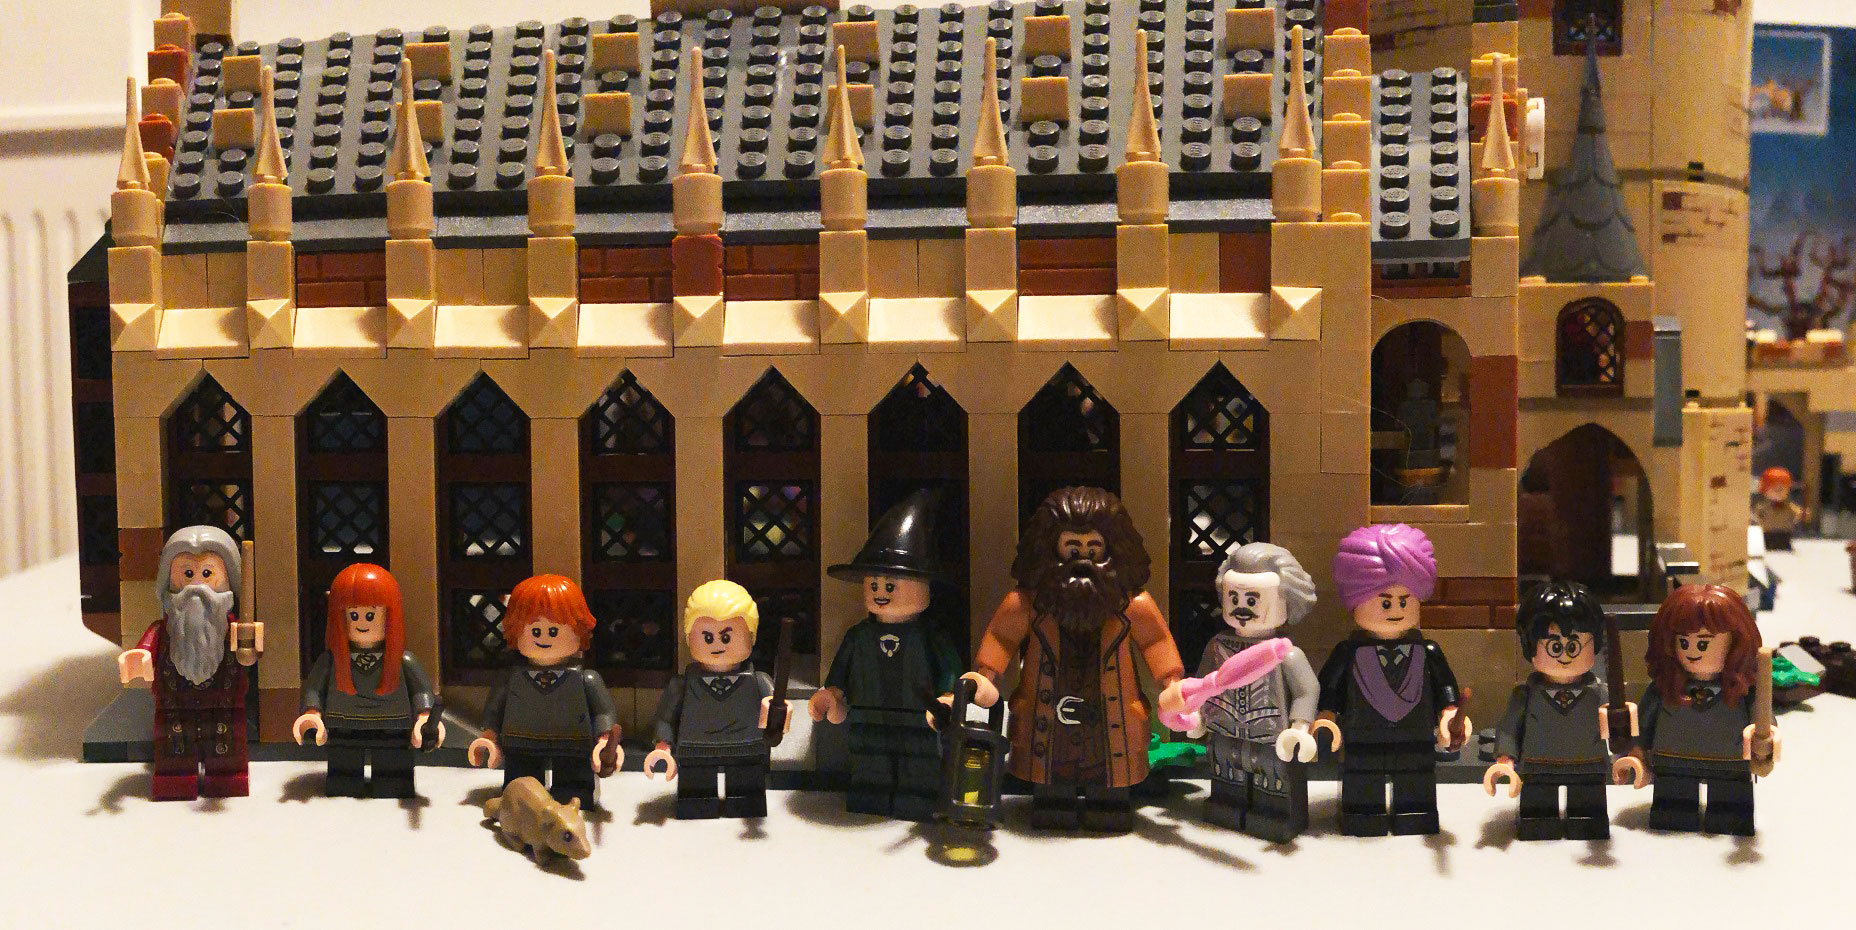 Review Of Lego Harry Potter Great Hall Whomping Willow Best